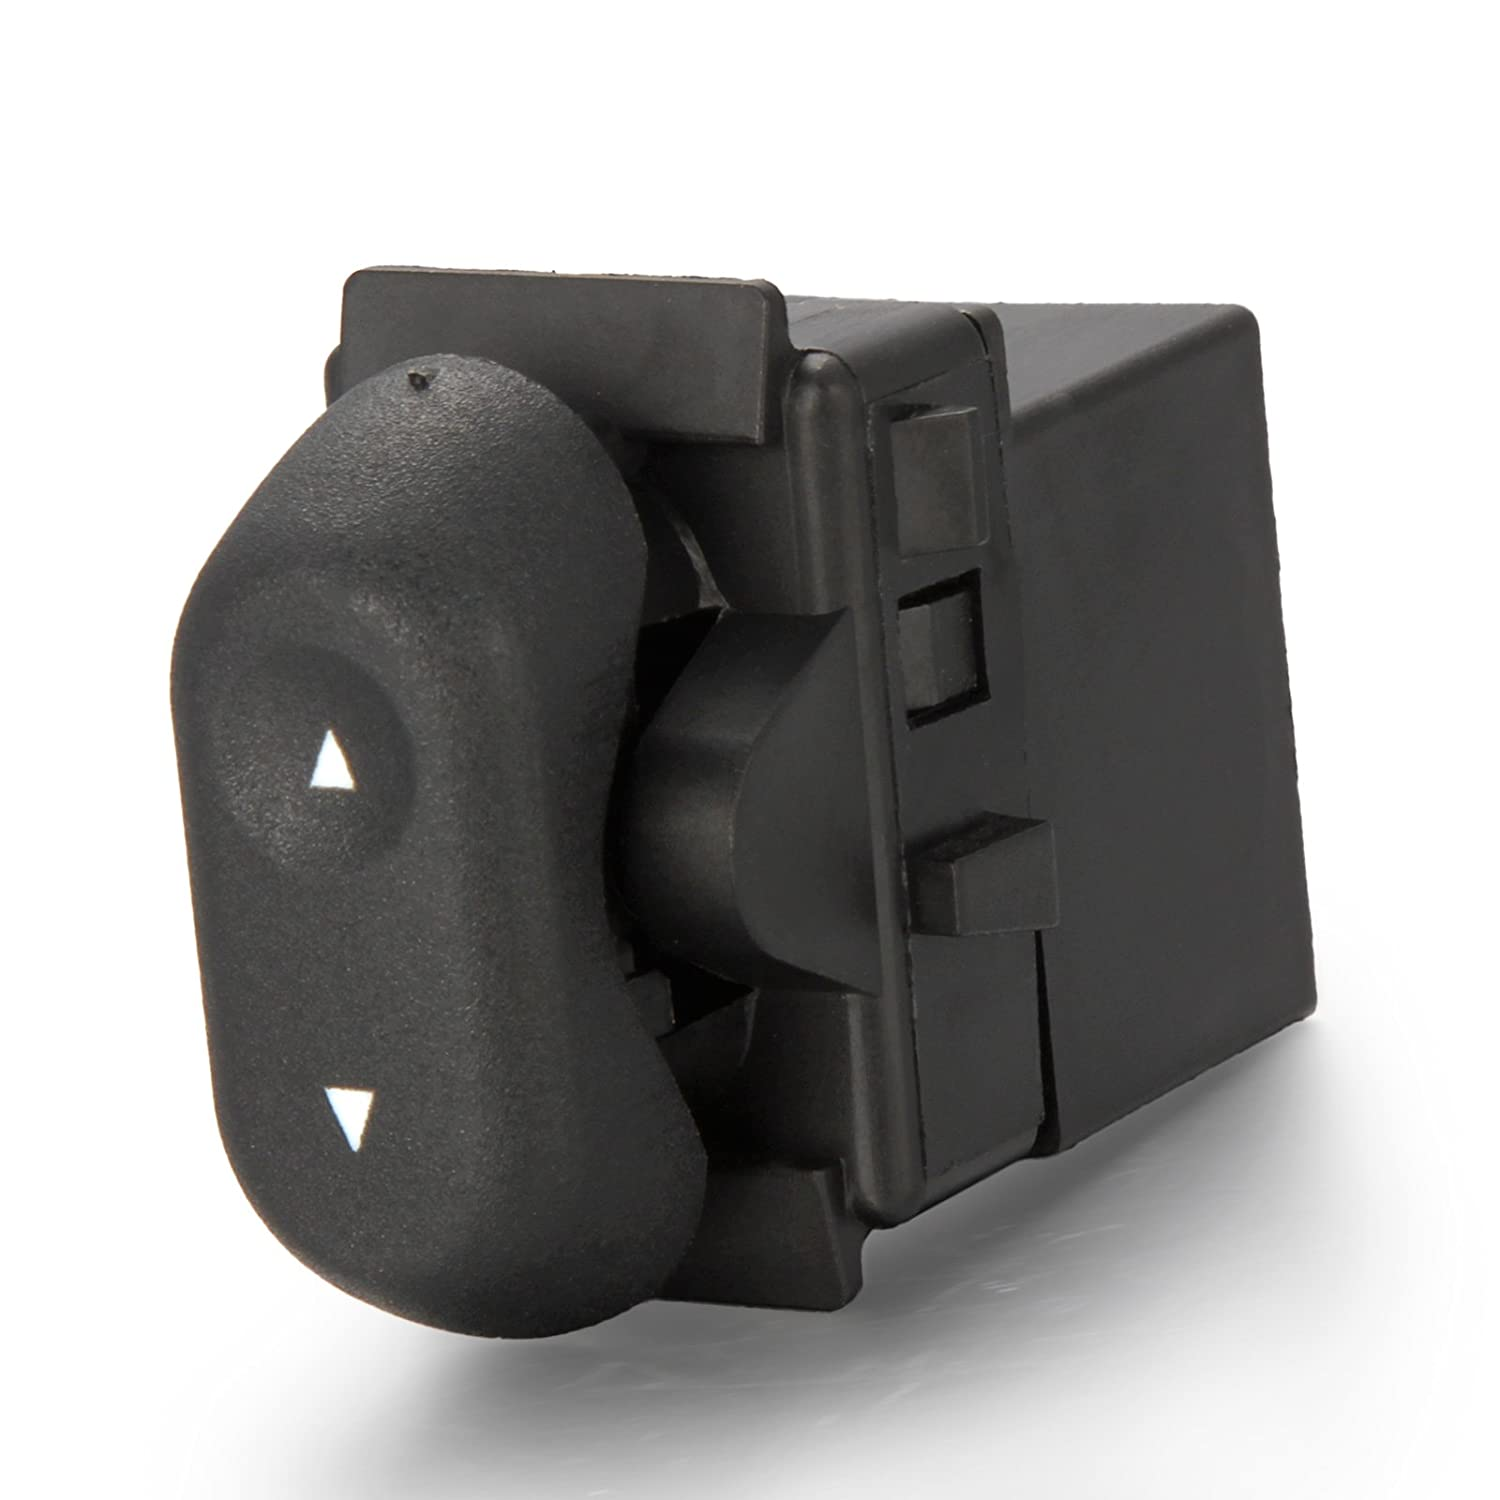 Twilight Garage 901-324 Power Window Master Control Switch 1 Button for Ford Expedition F-150 2004-2008 Front Right Rear Side 5L1Z-14529-BA